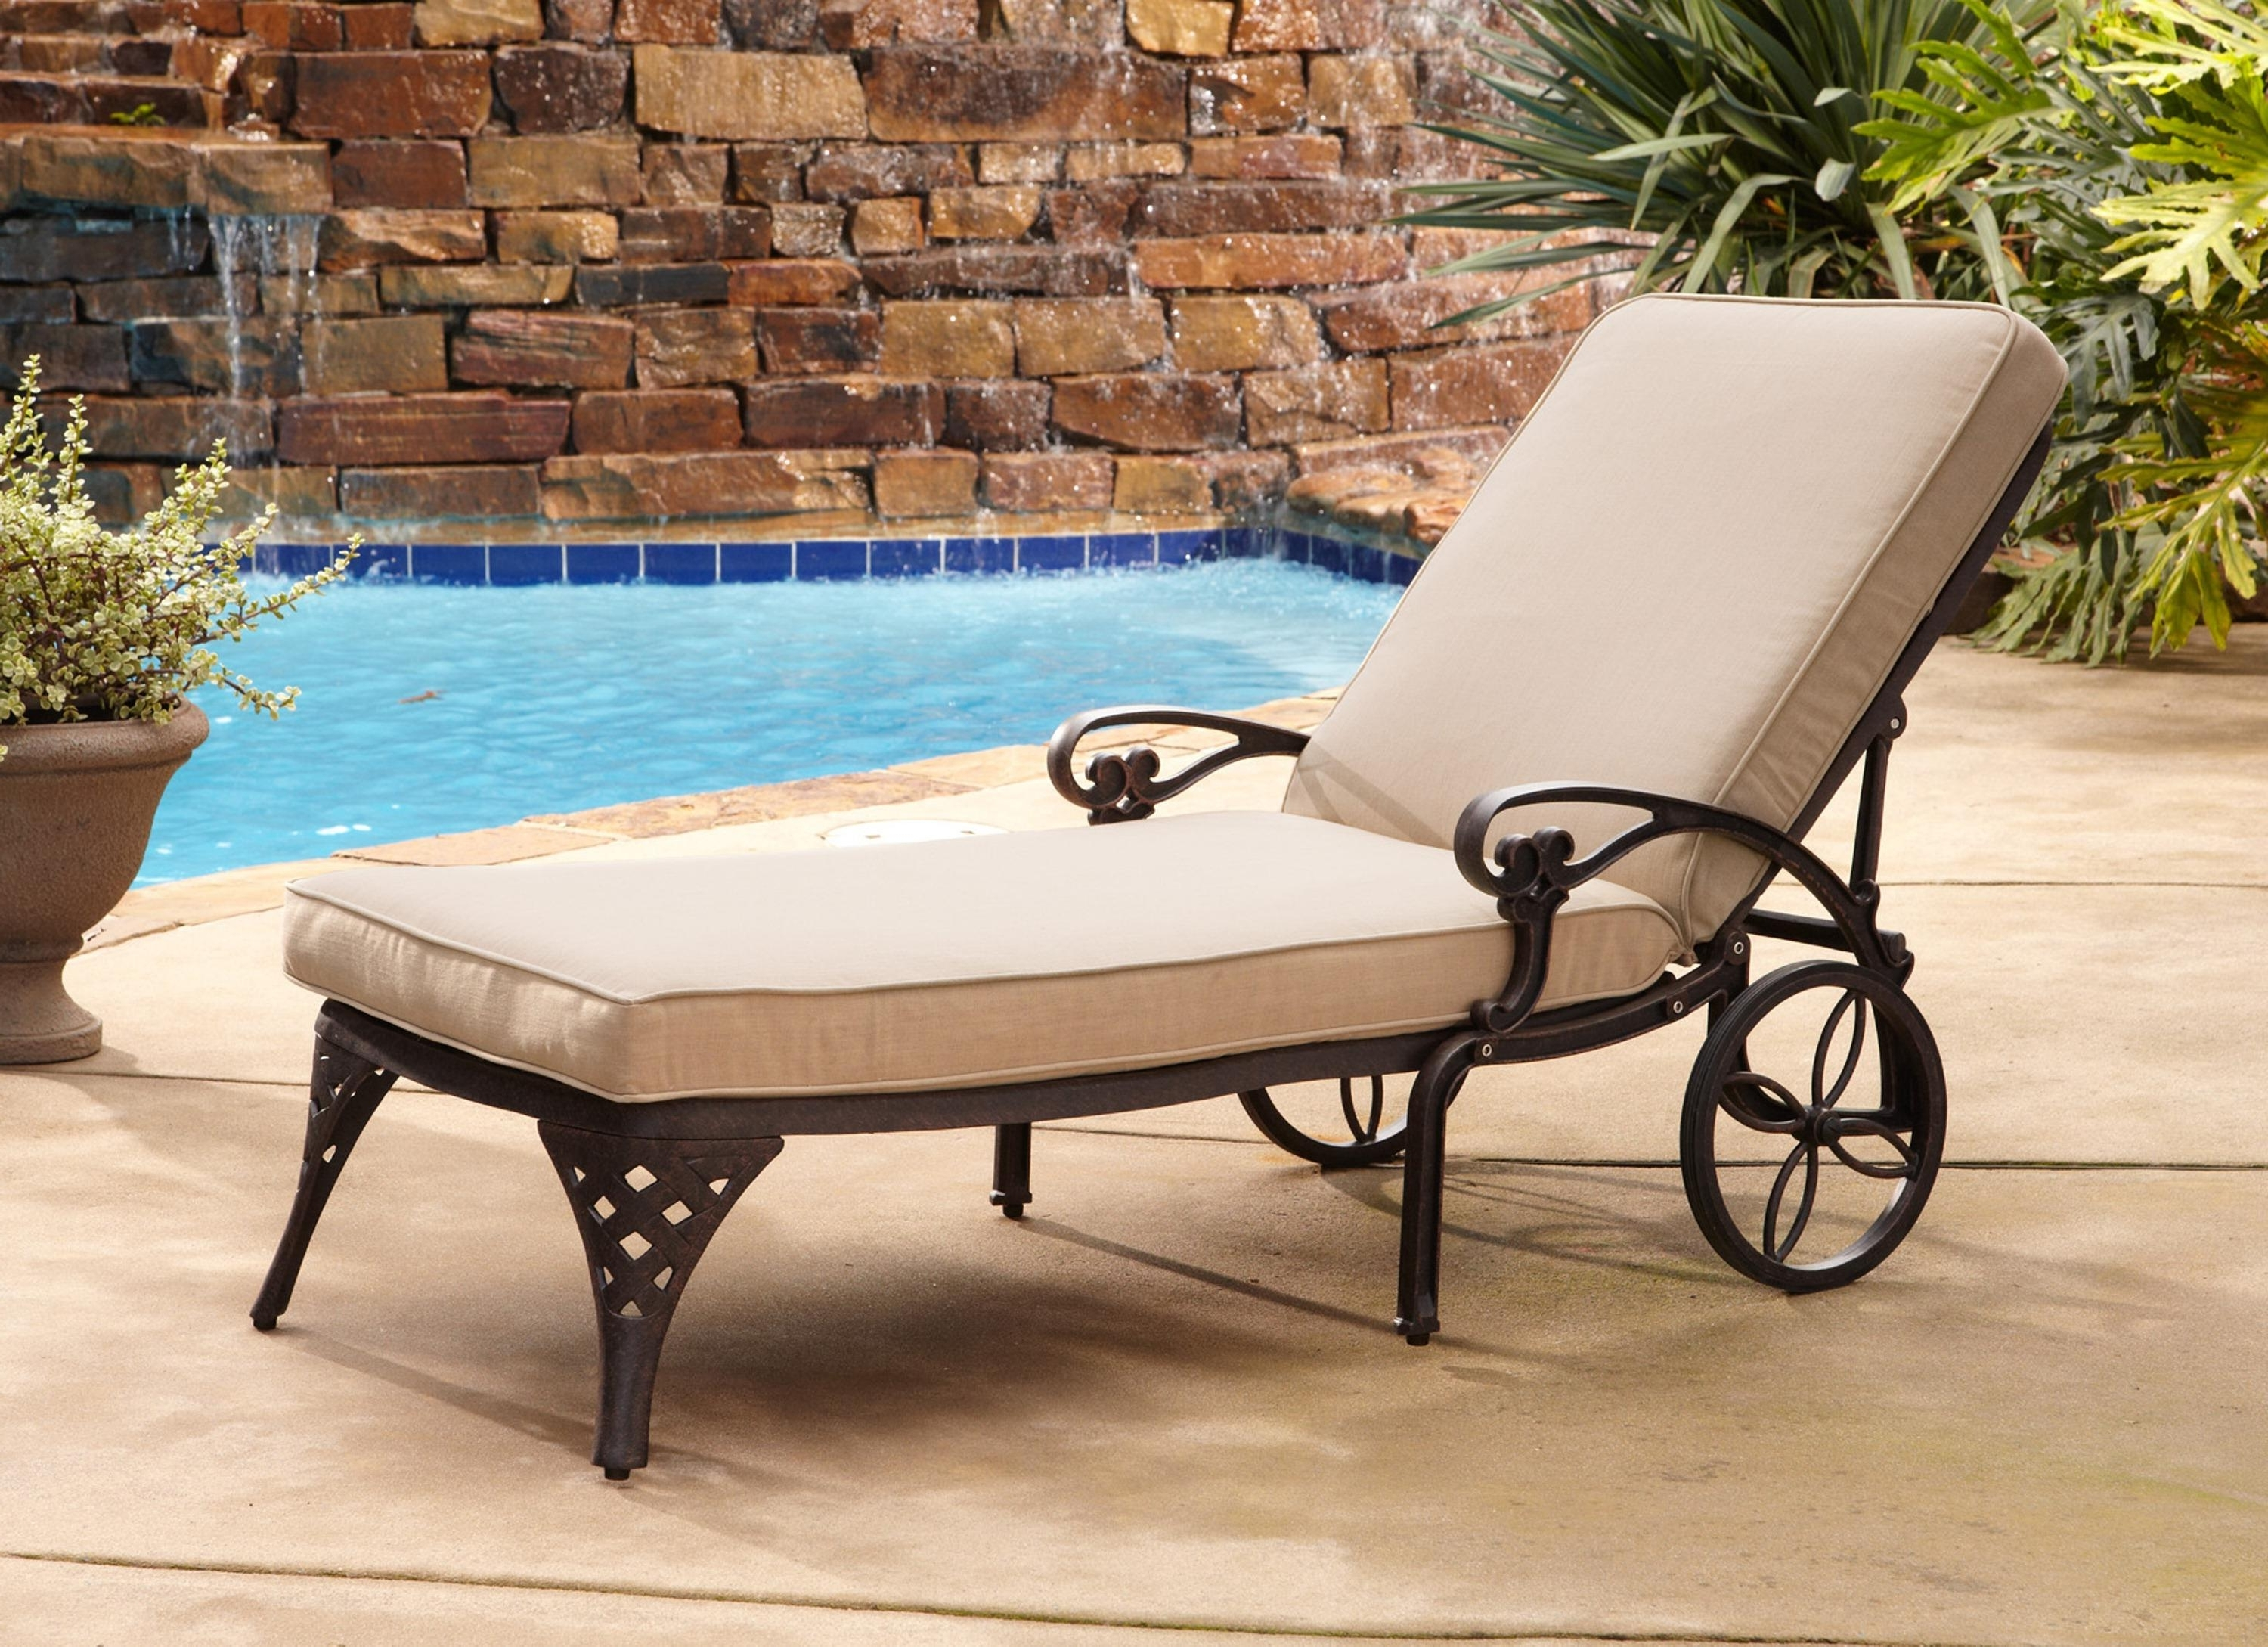 Outdoor Metal Chaise Lounge Chairs Intended For Well Known Metal Chaise Lounge Chairs With Wheels • Lounge Chairs Ideas (View 12 of 15)